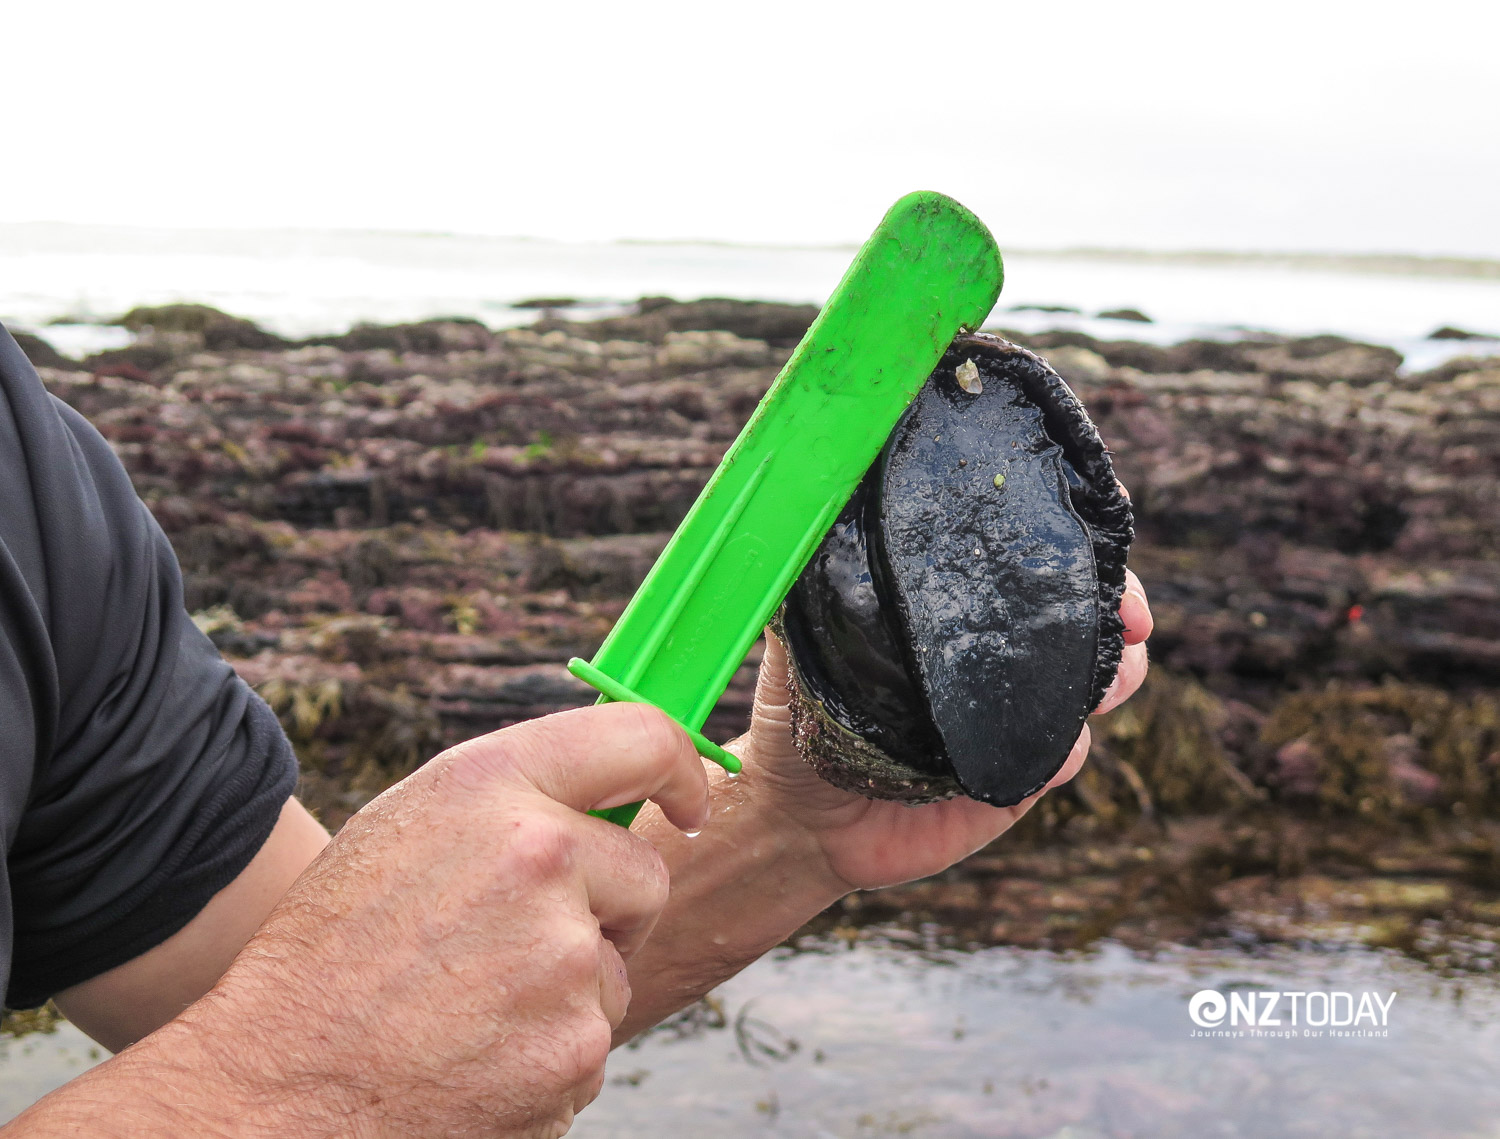 Spatula helps prise paua off rocks, and includes a measure to check for legal size